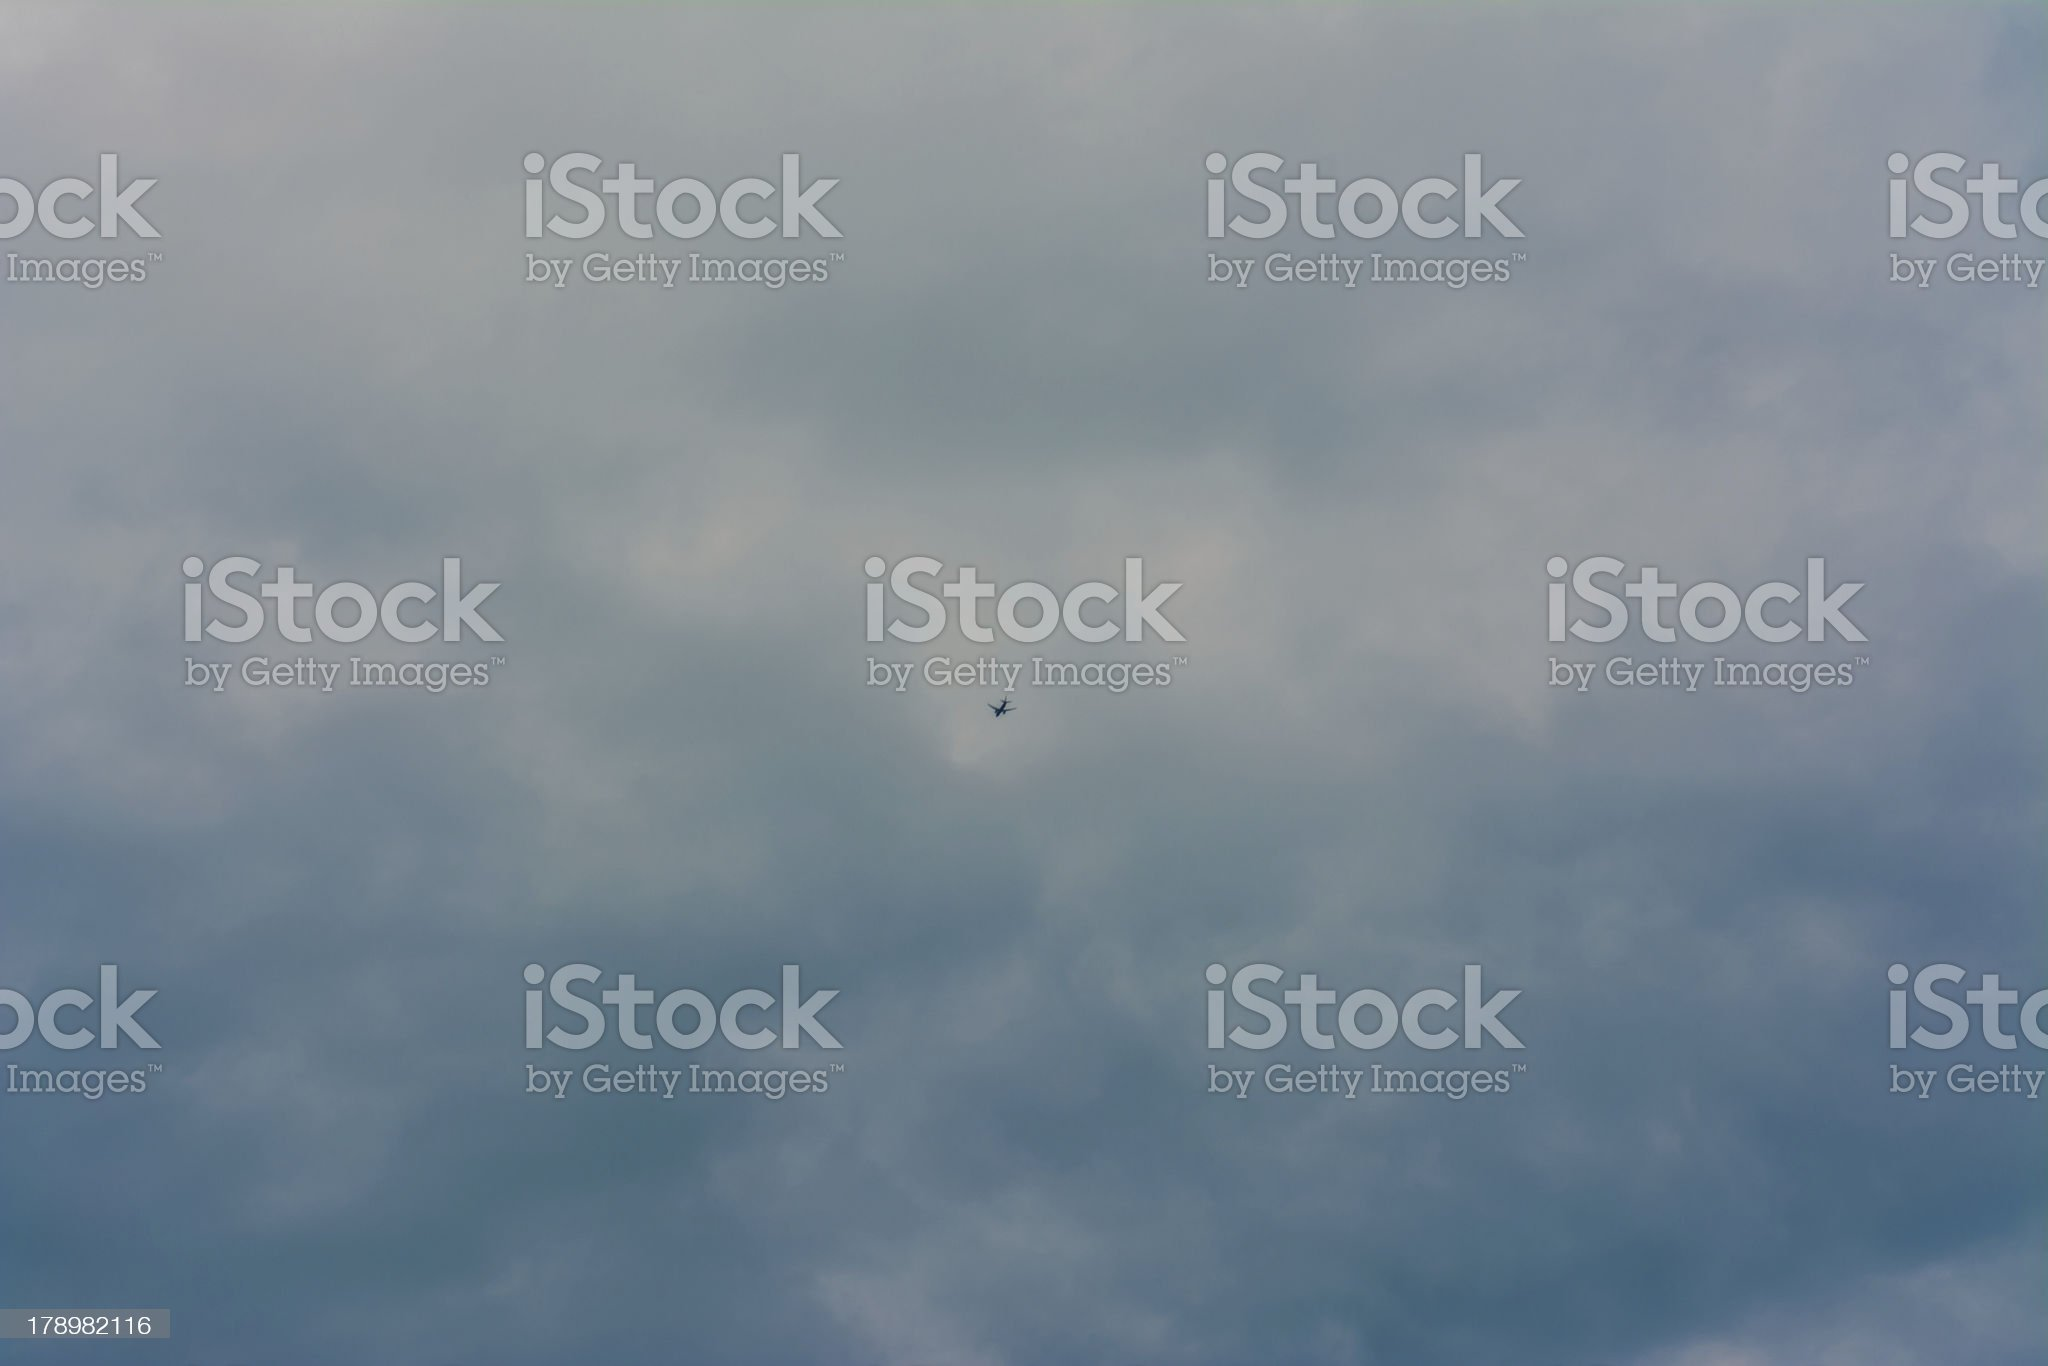 UFO Captured in This Series of Photos 15-14 royalty-free stock photo